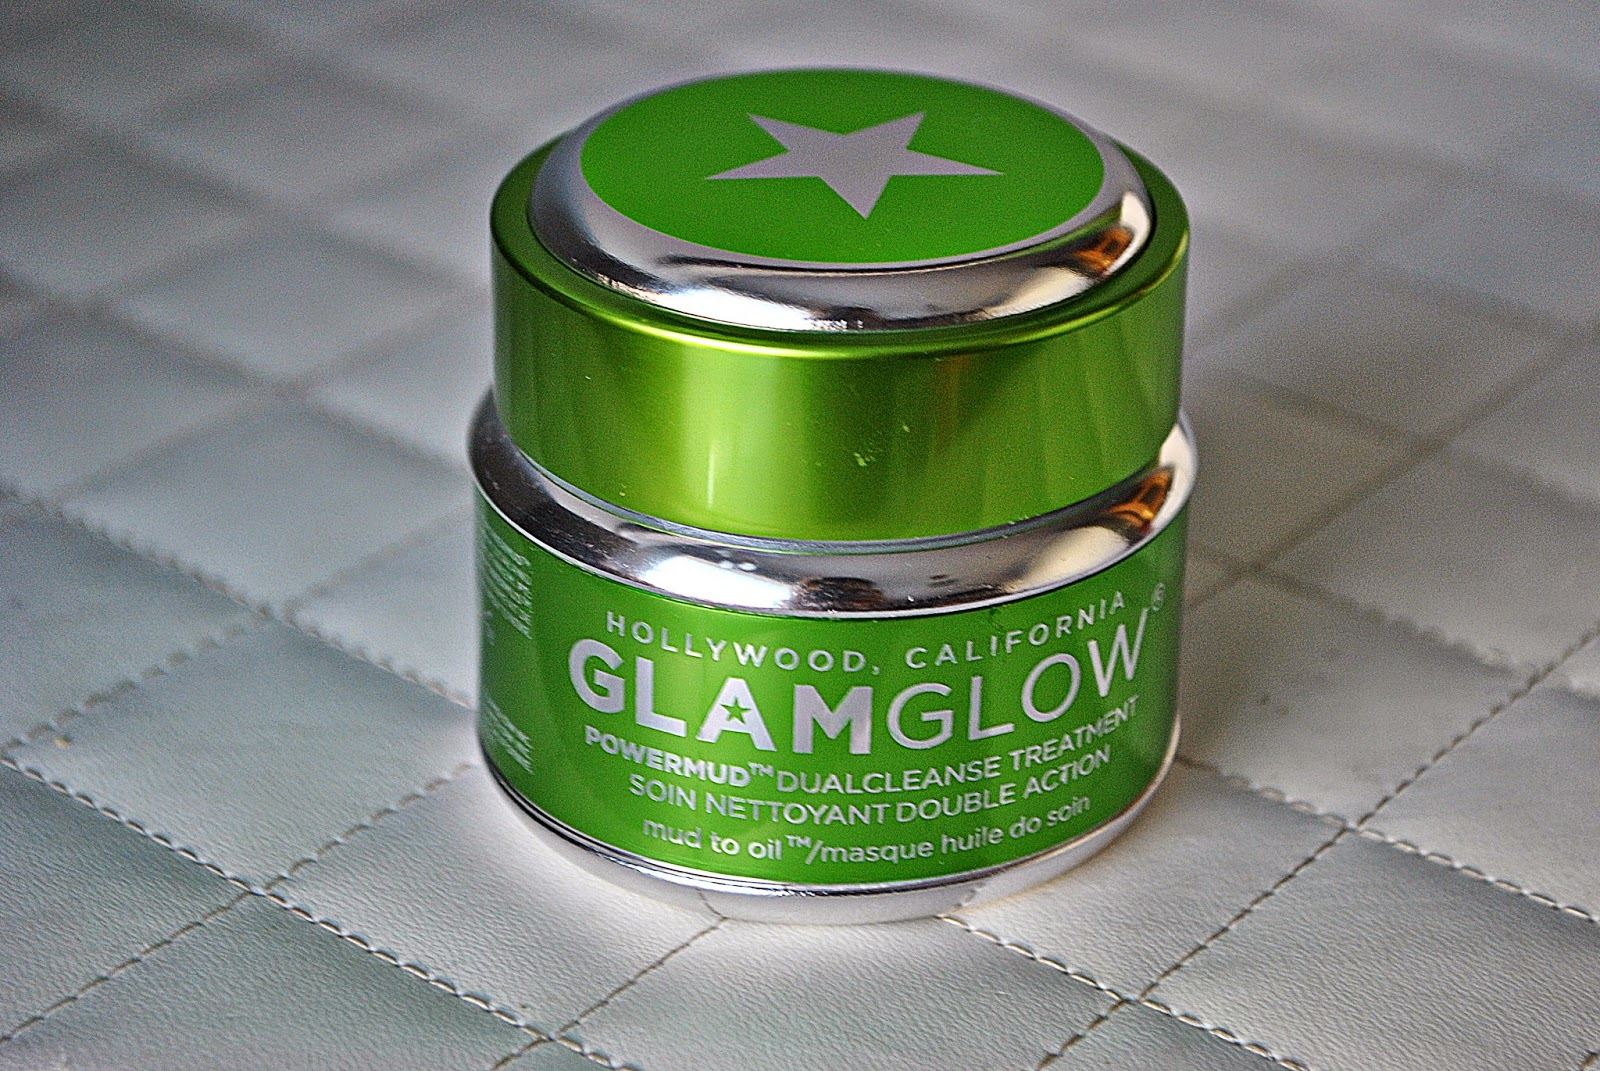 GLAM GLOW POWDER MUD DUAL CLEANSE TREATMENT